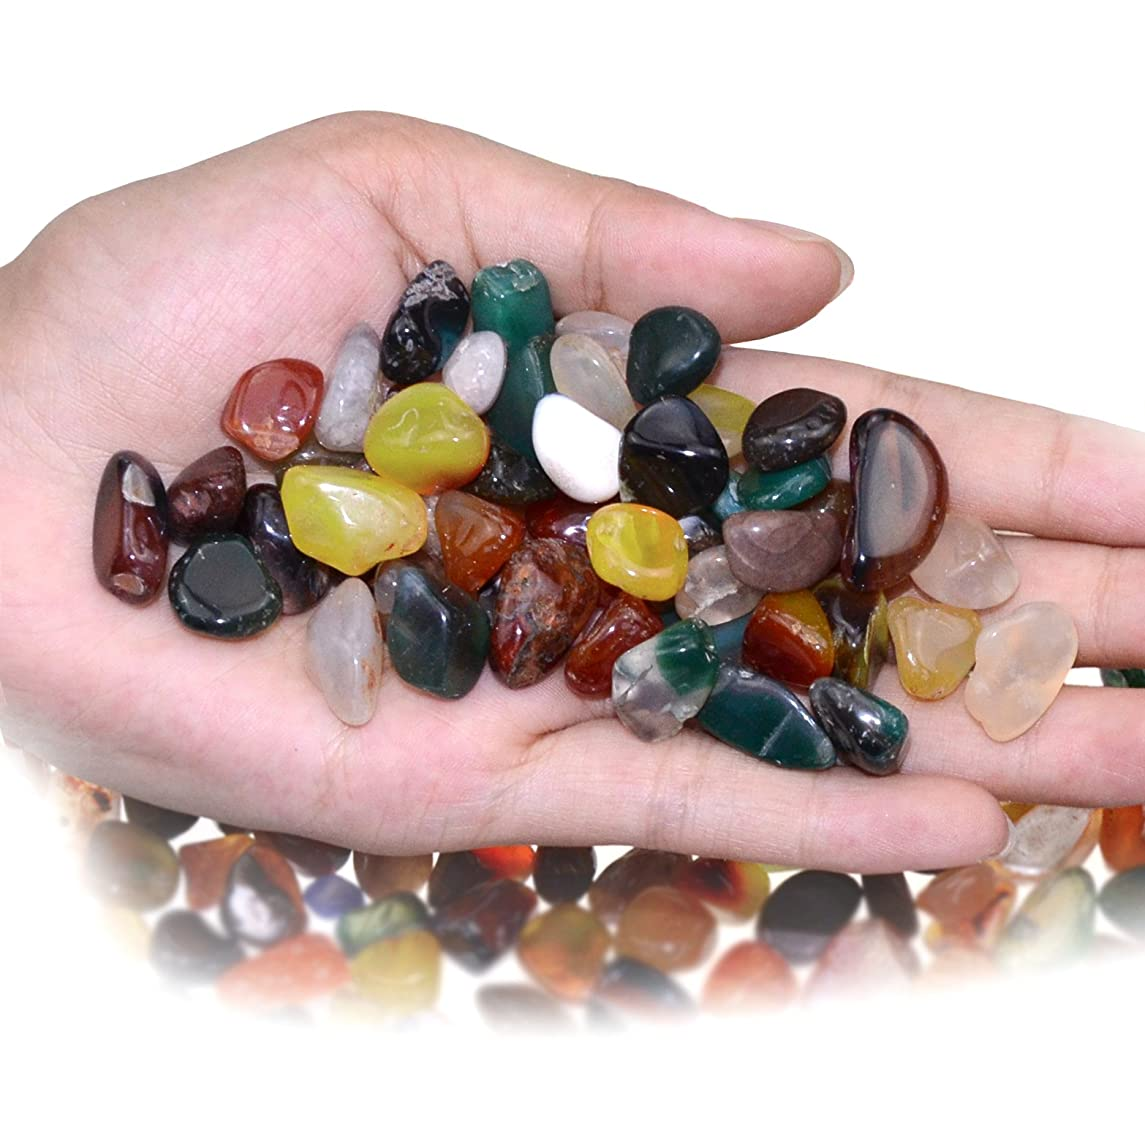 KINGOU Replacement Mancala Stones Mixed Colored Pebbles/Beads/Gems for Games